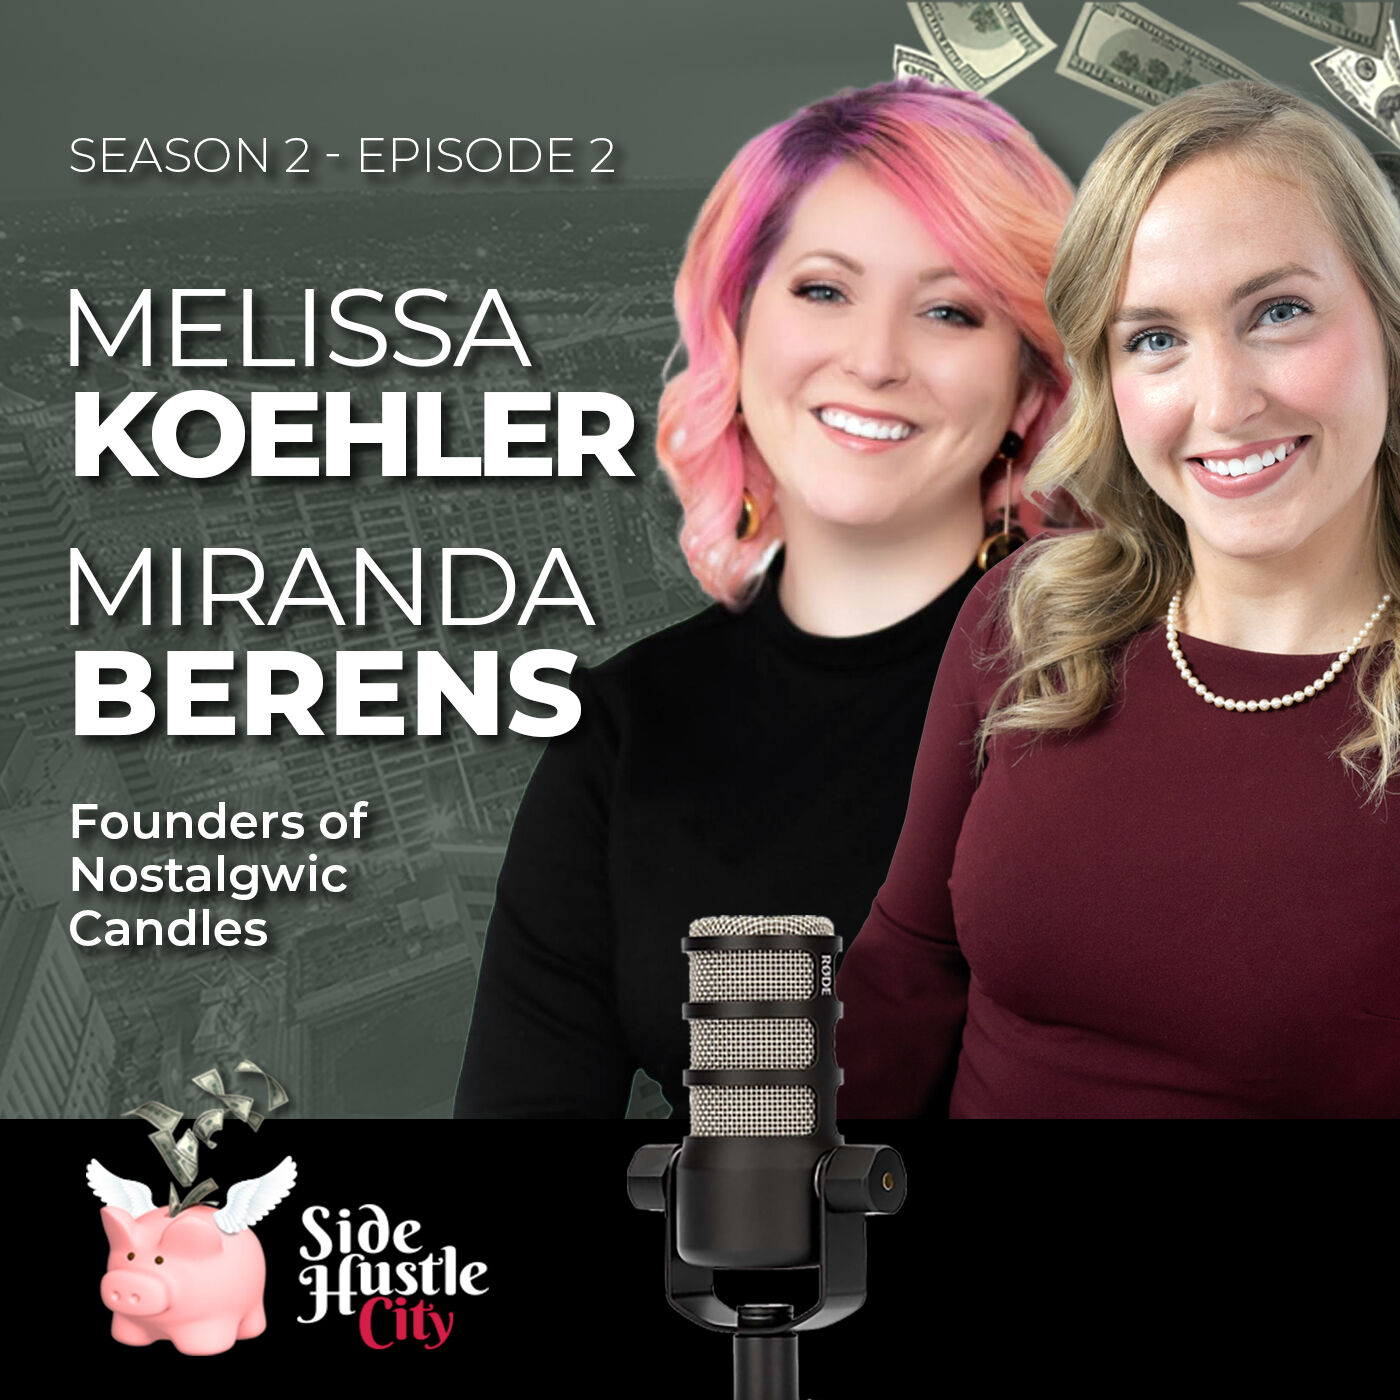 Season 2, Episode 2 - Melissa Koehler and Miranda Berens discuss how easy it was to open an online store and the process they followed